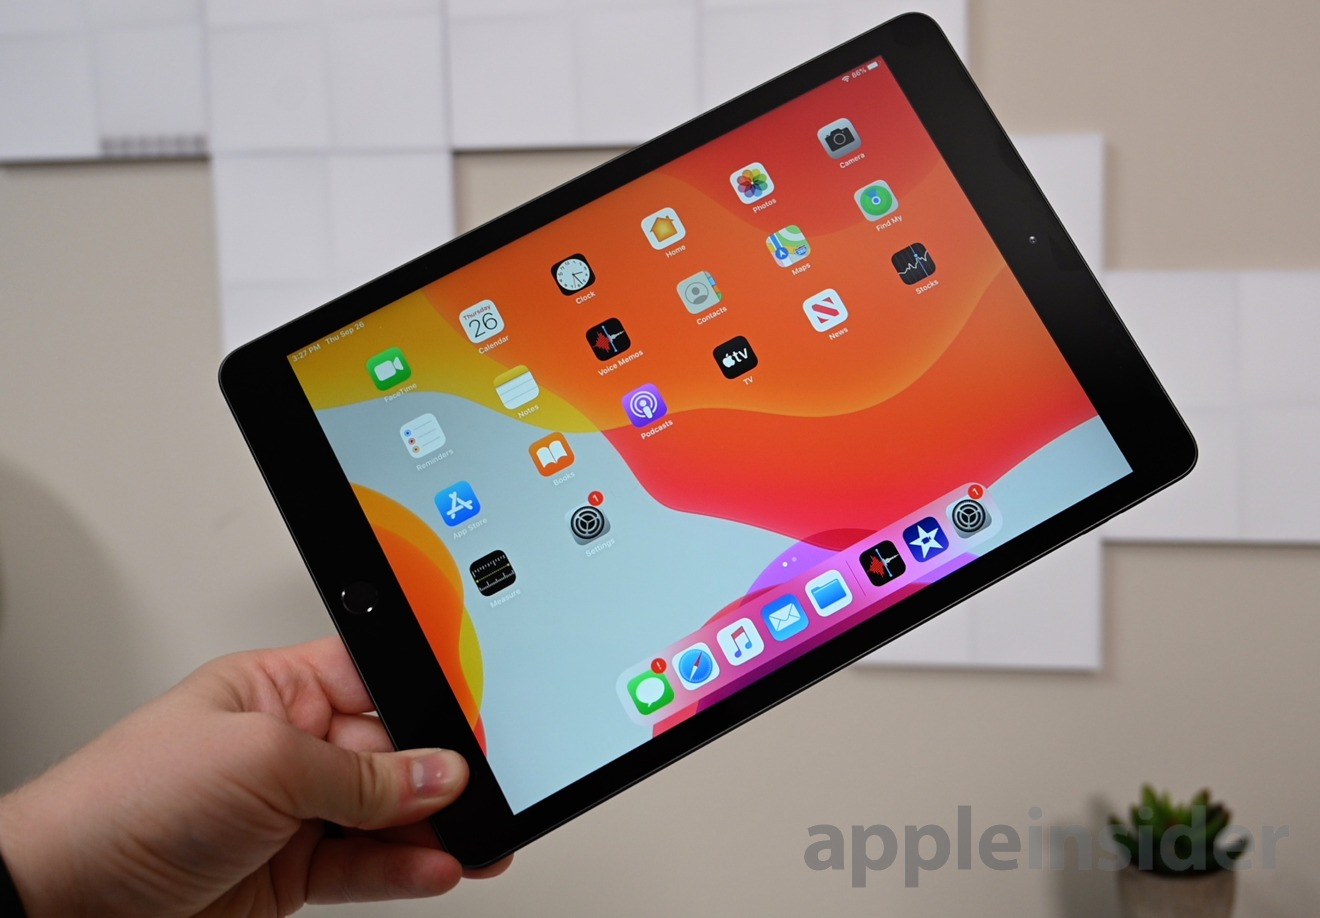 ipad trade in deals 2019